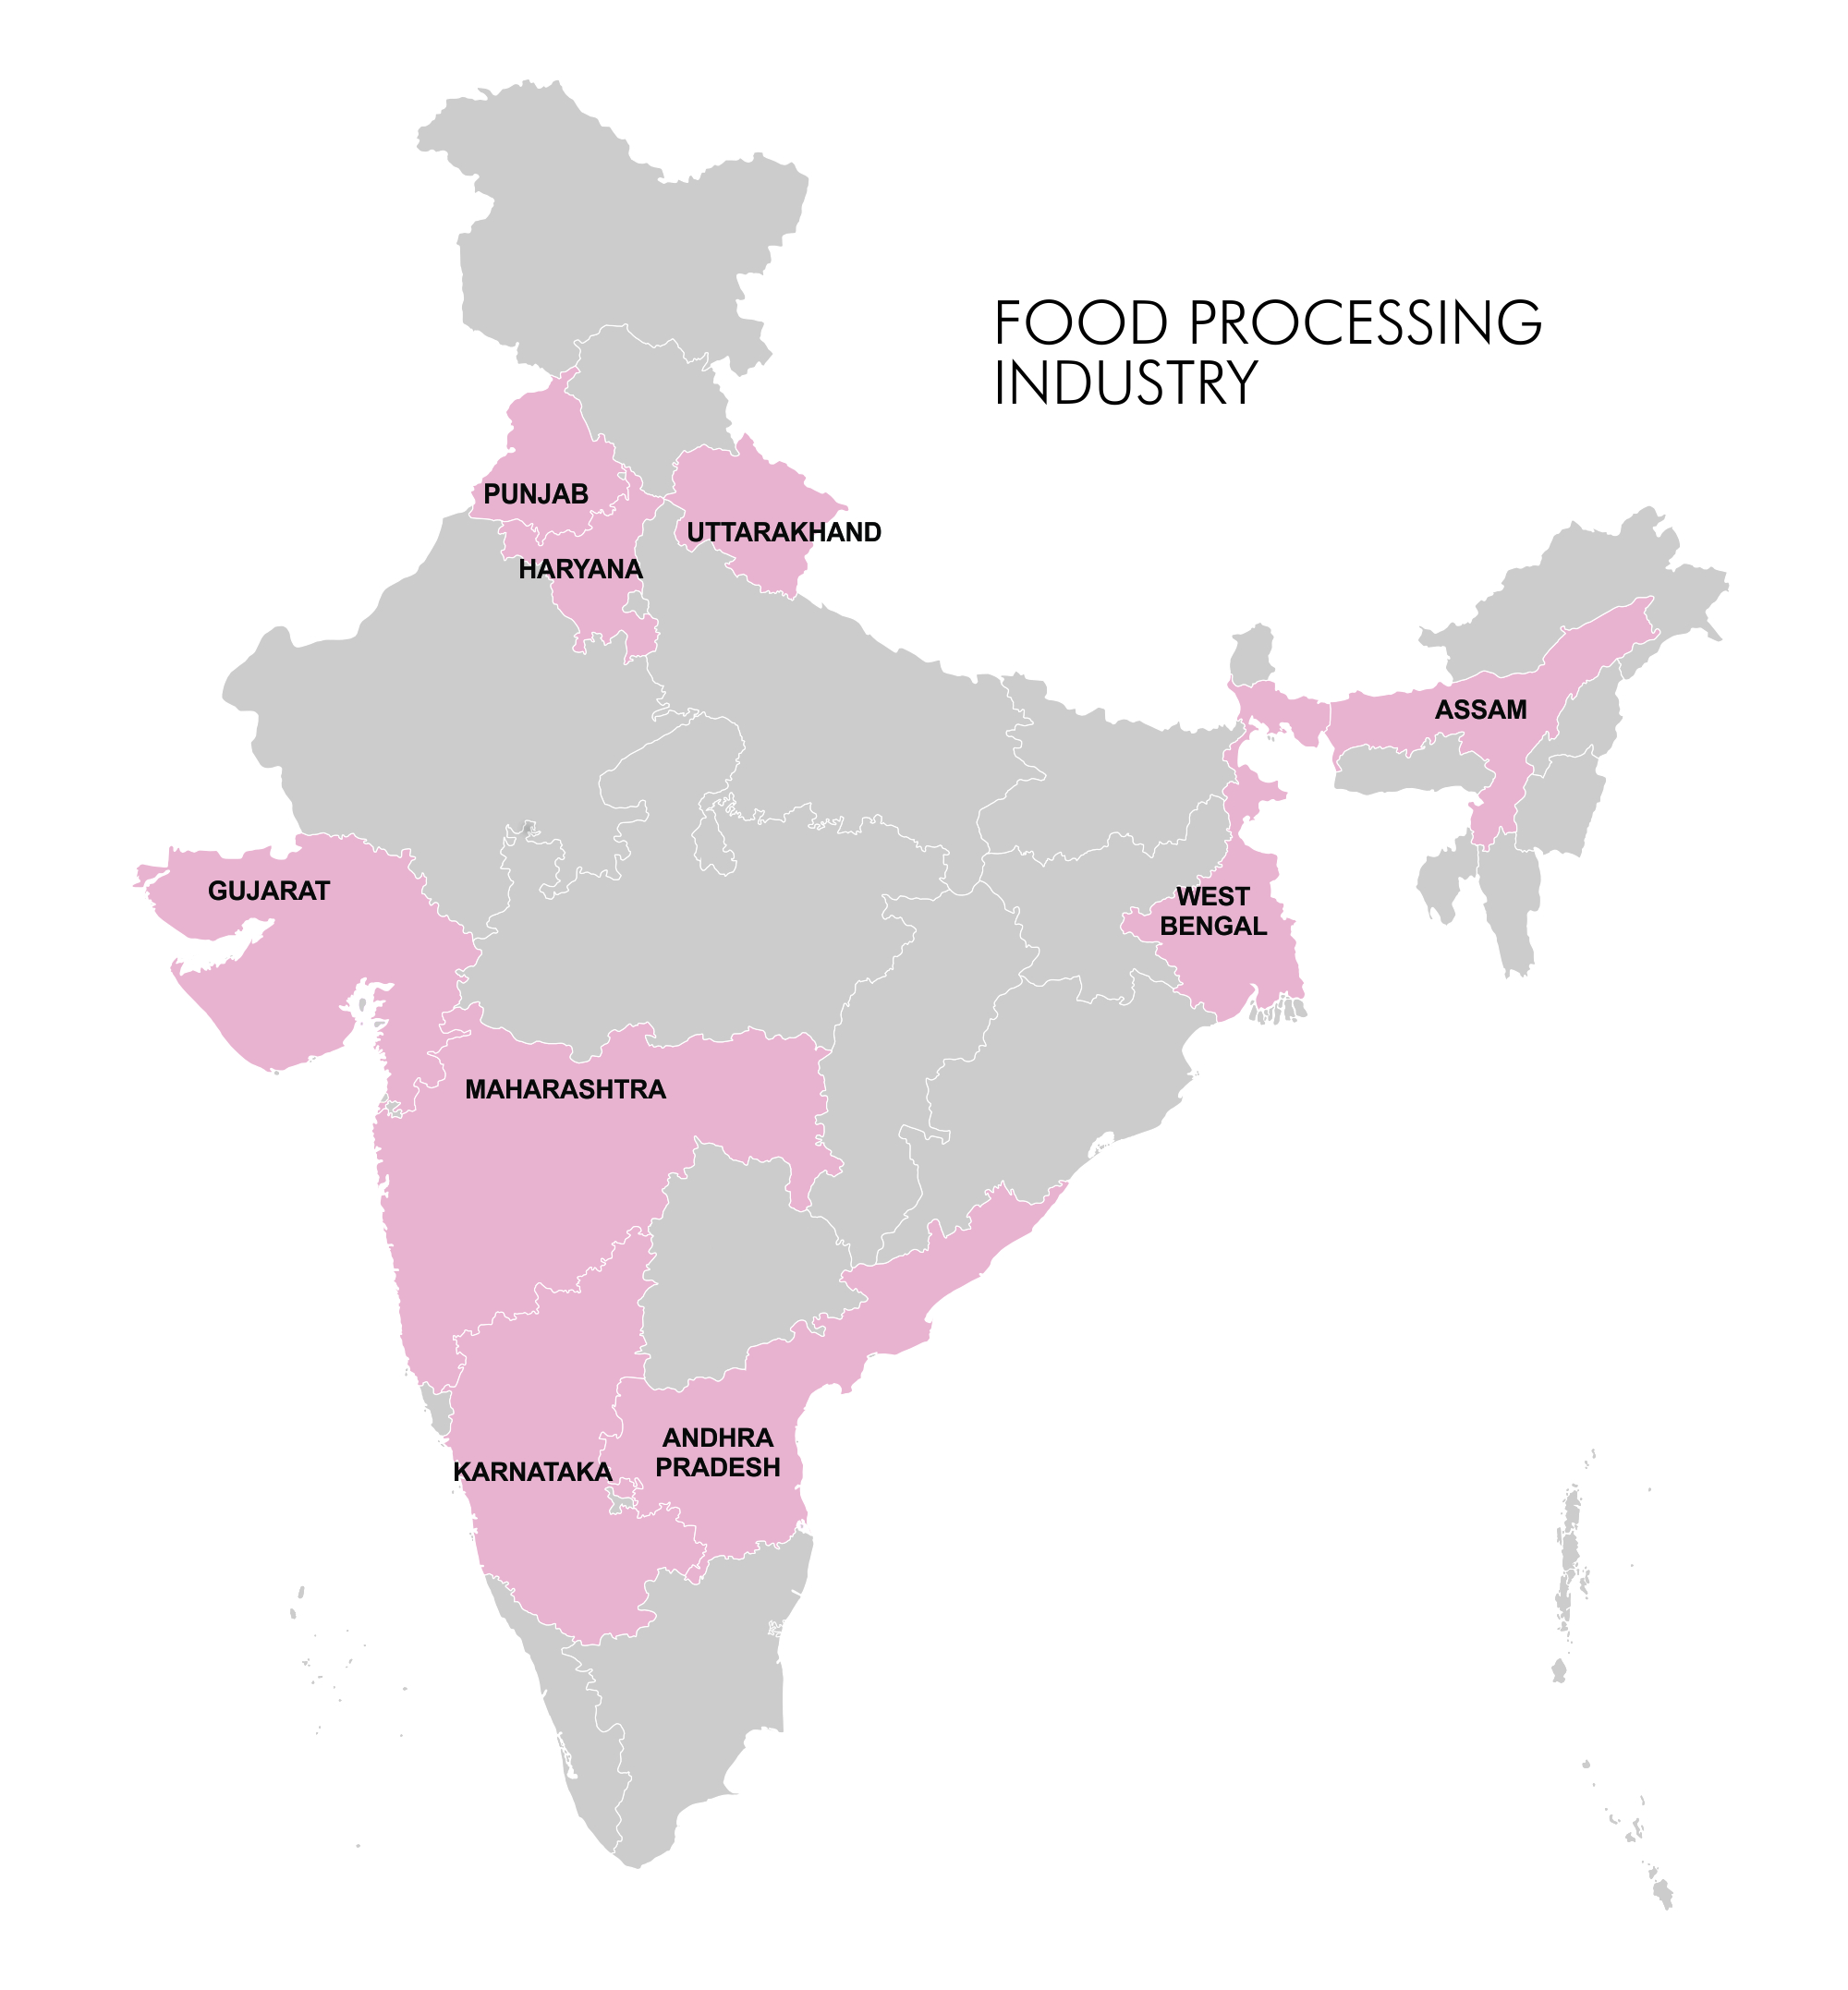 Map - Industry Clusters: Food Processing